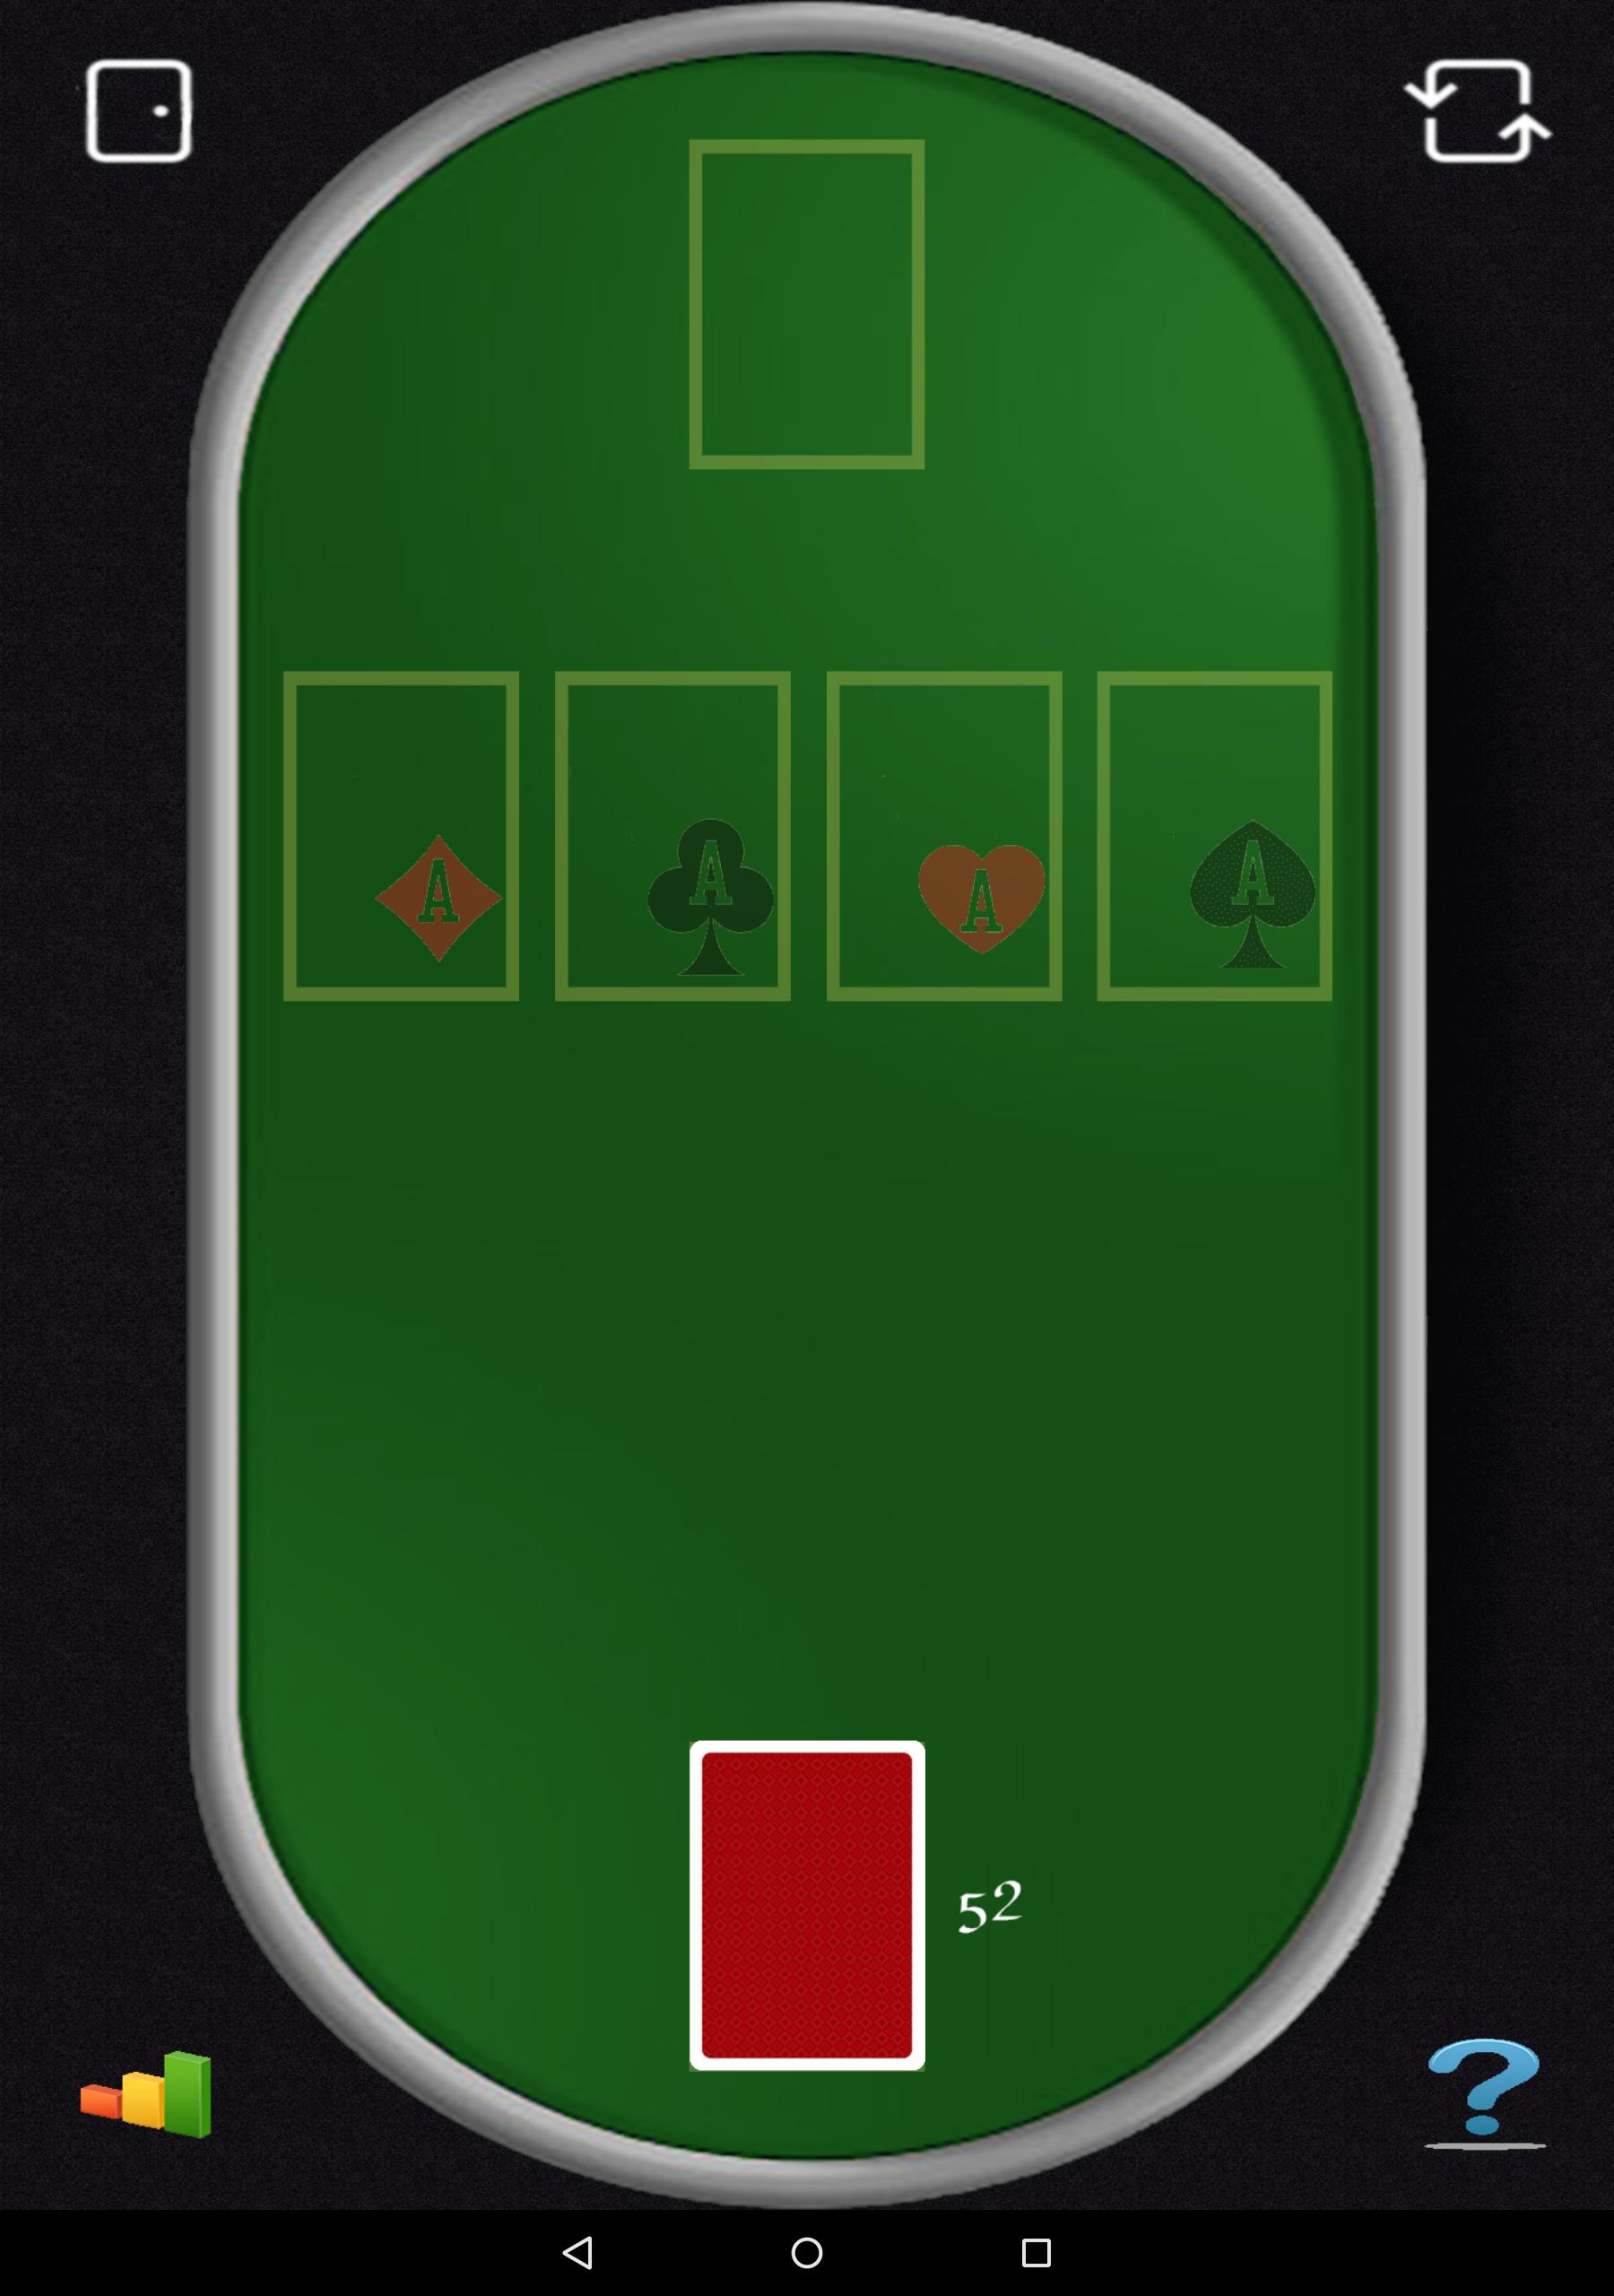 Aces Up Solitaire 5.4 Screenshot 11